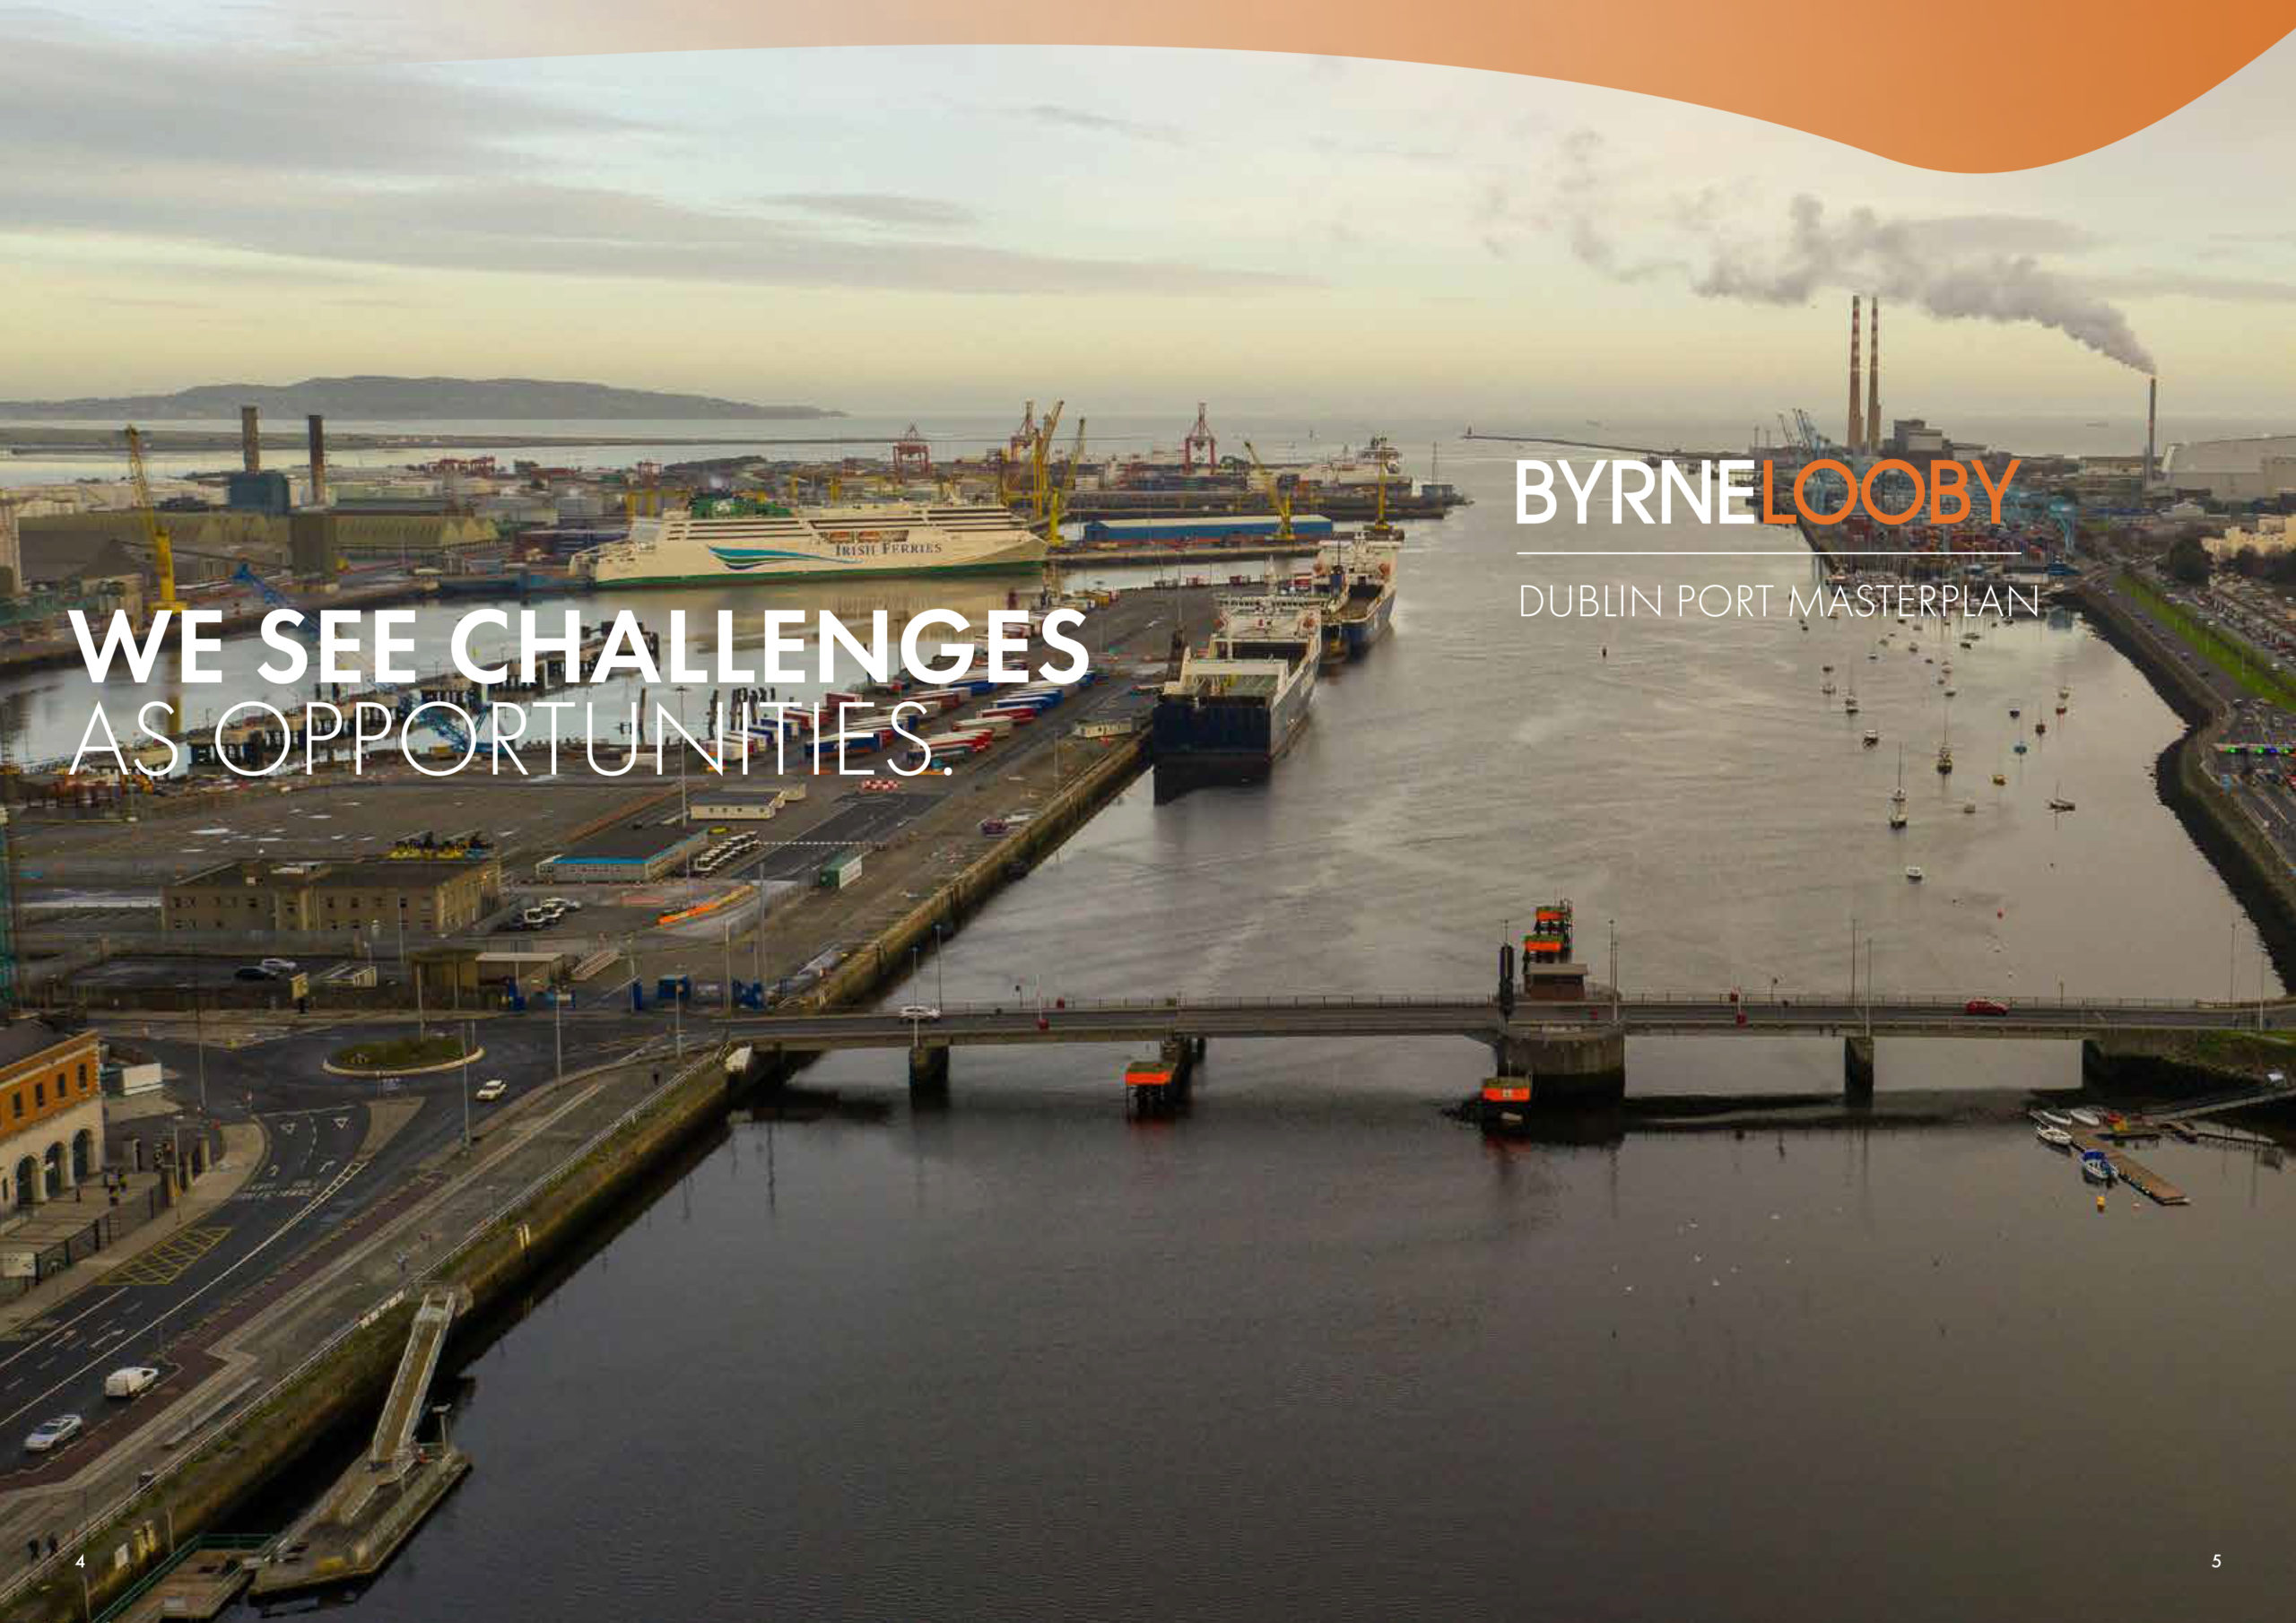 ByrneLooby will be exhibiting, as well as recruiting at Jobs Expo this November